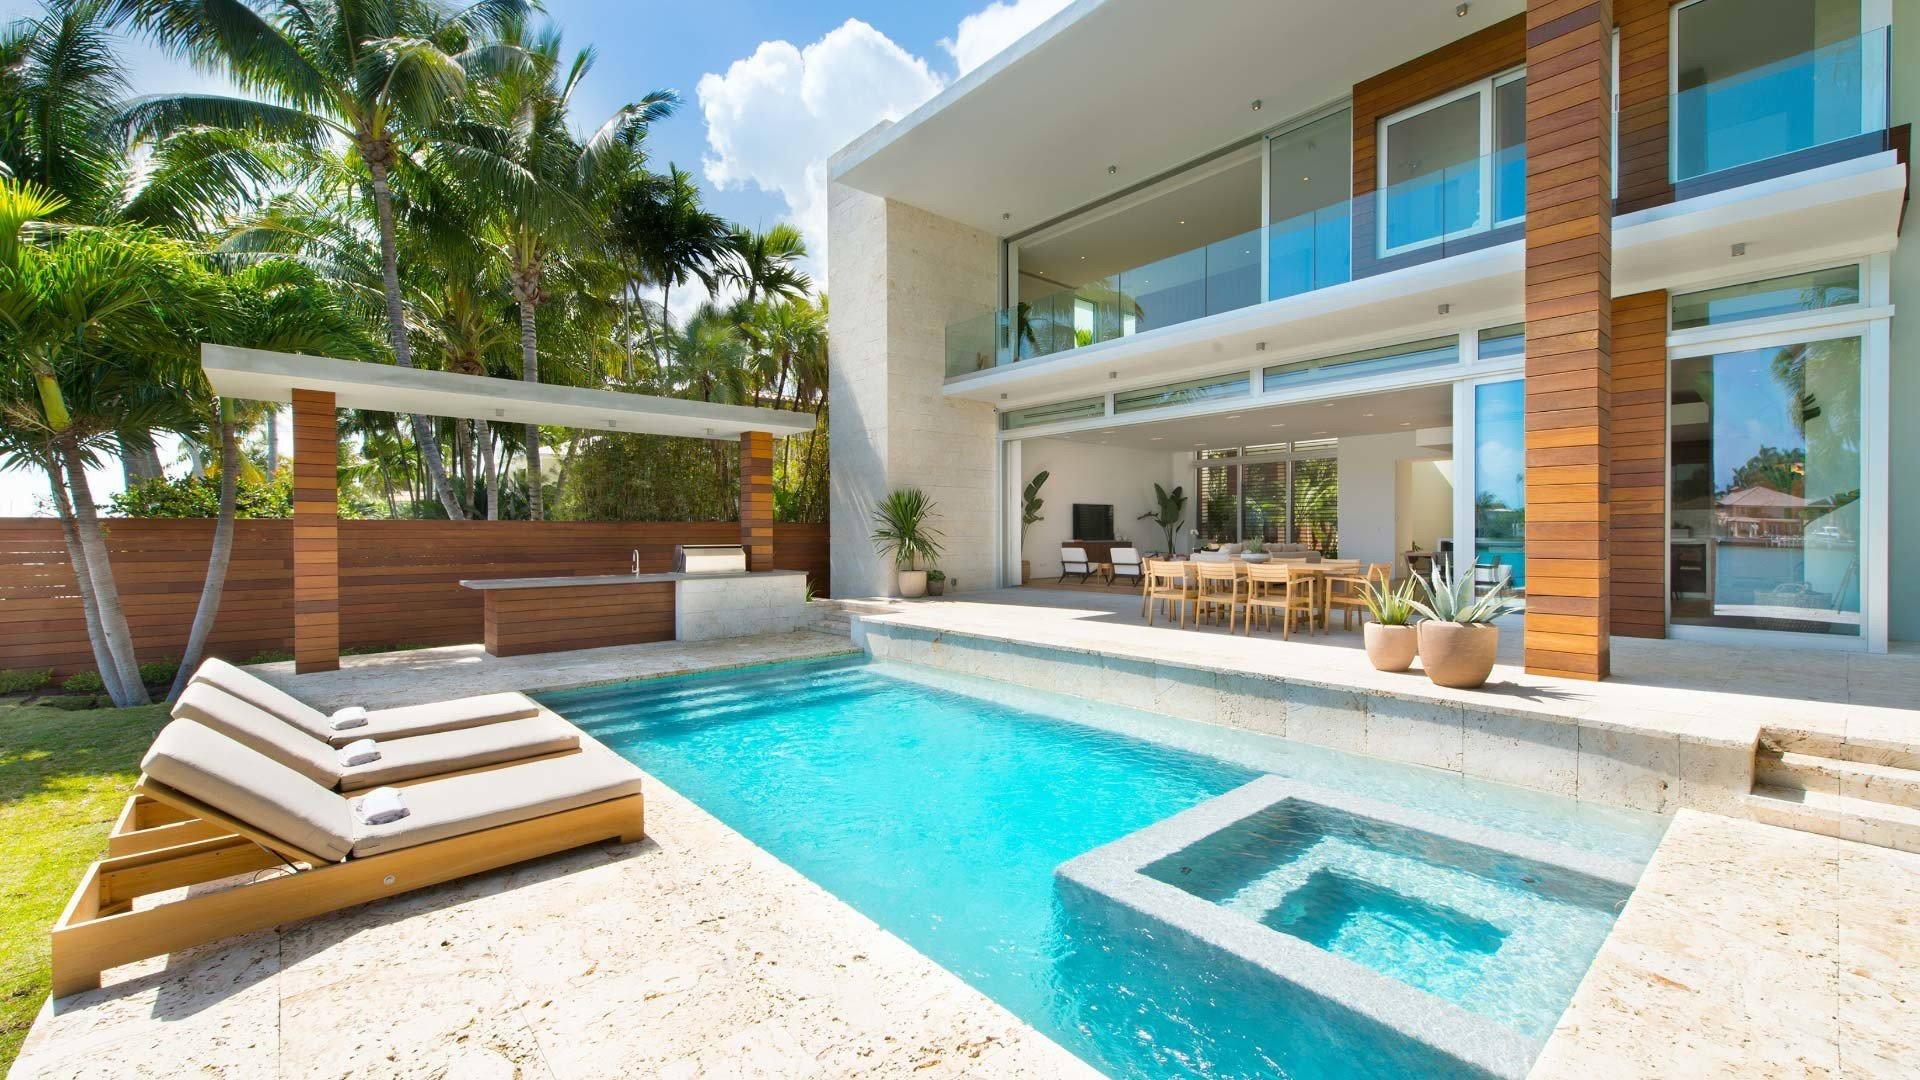 Dilido Residence Specialty Engineering Division Miami Beach, FL